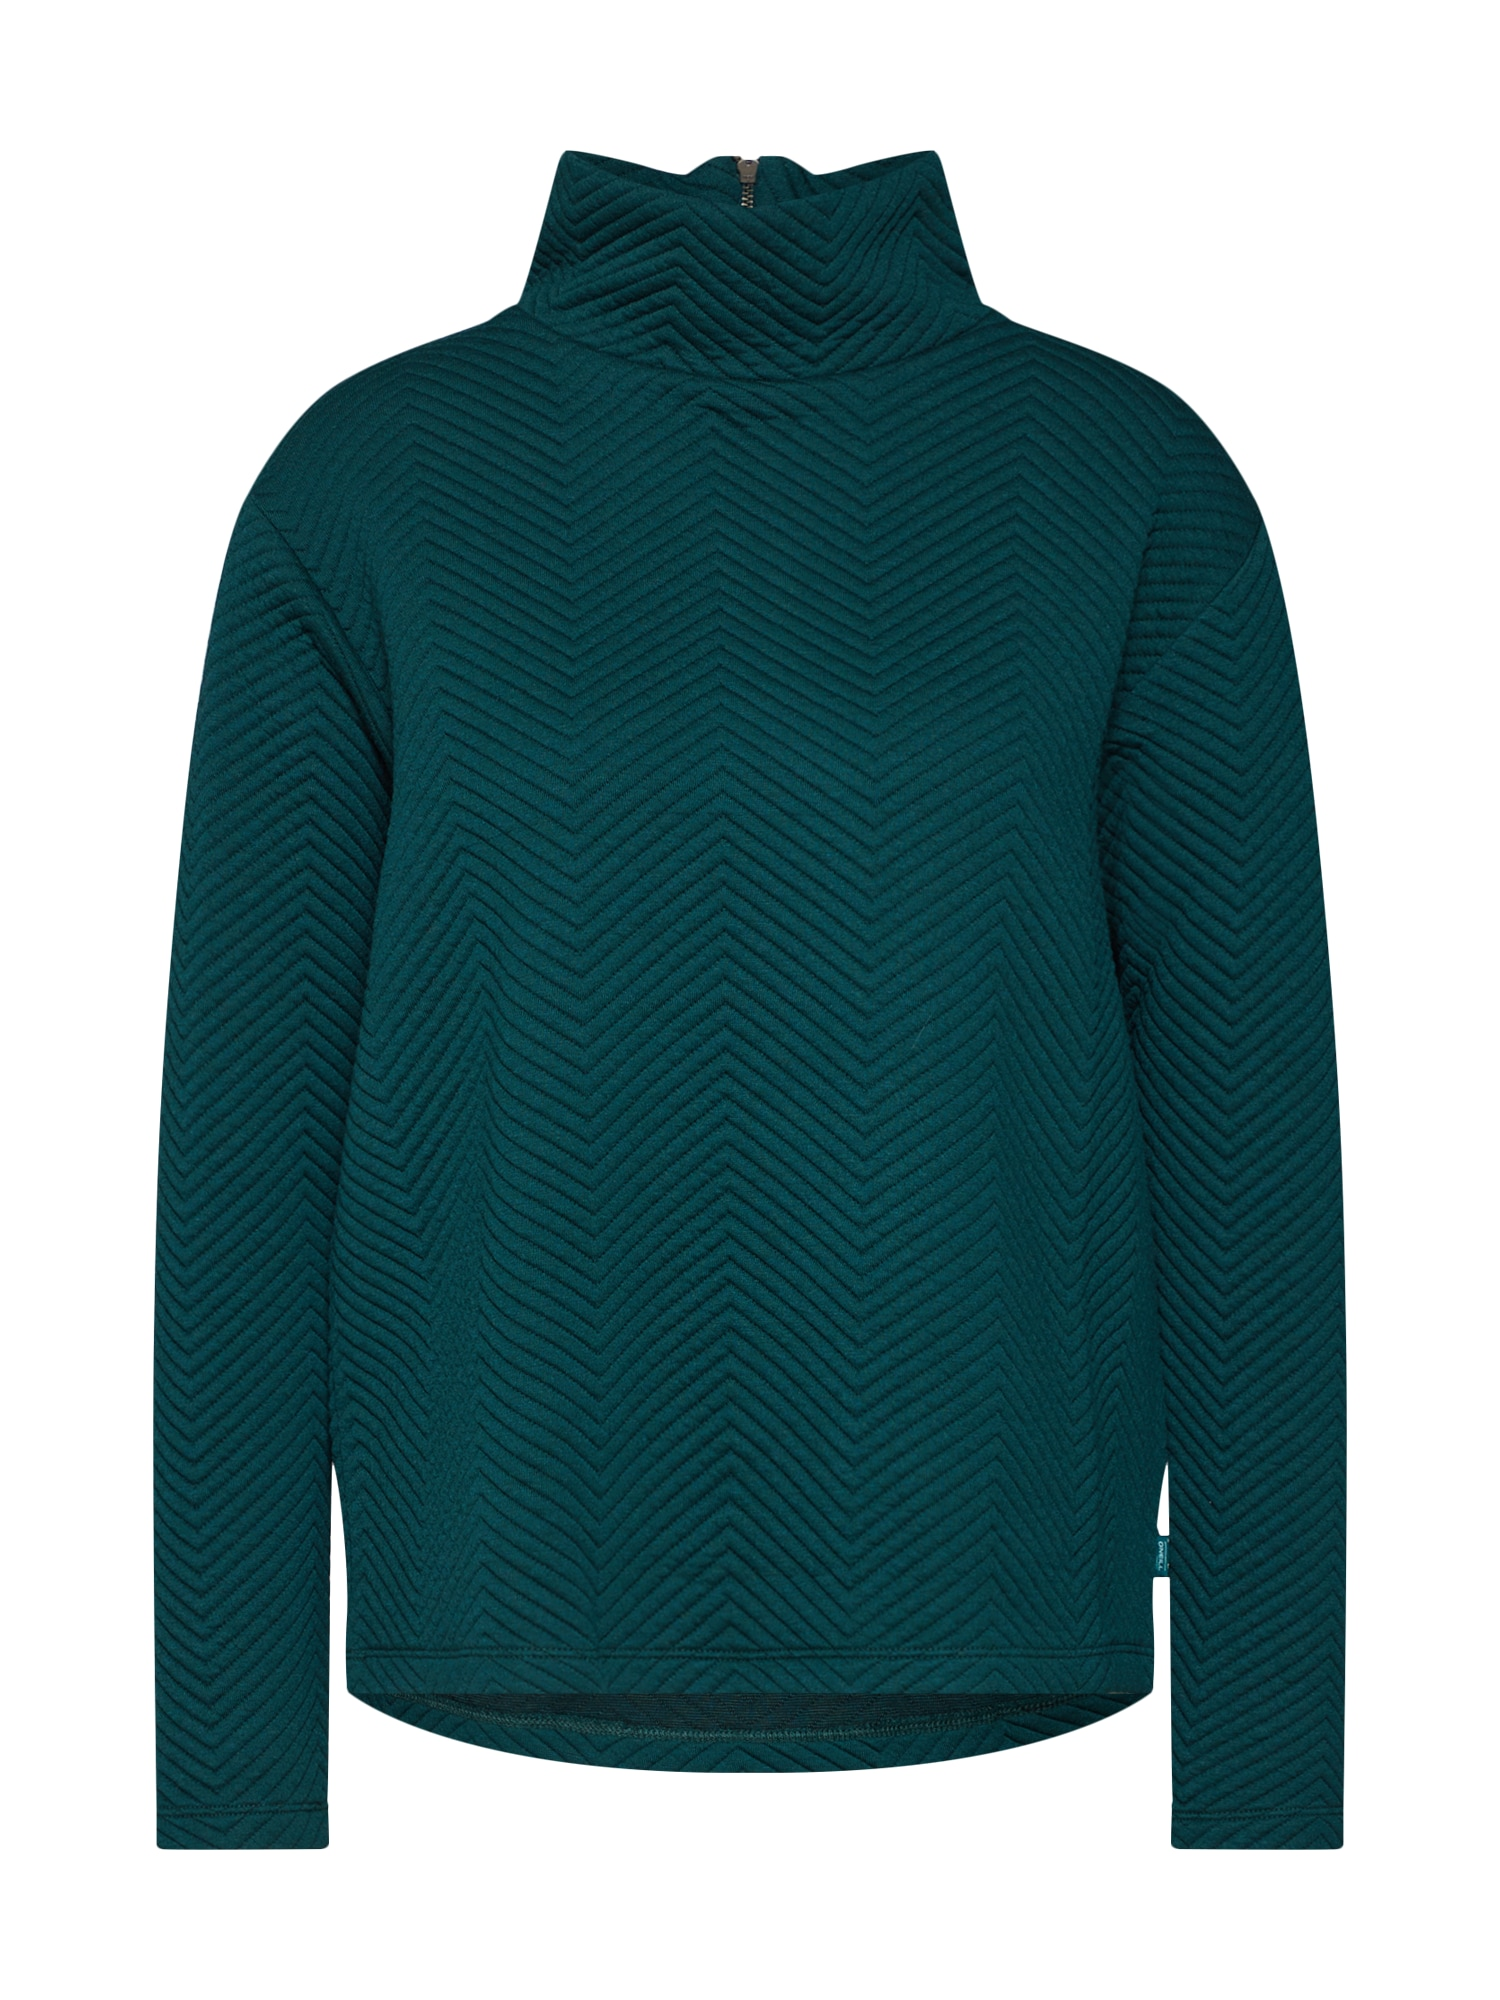 ONEILL Mikina LW QUILTED SWEATSHIRT jedle O'NEILL